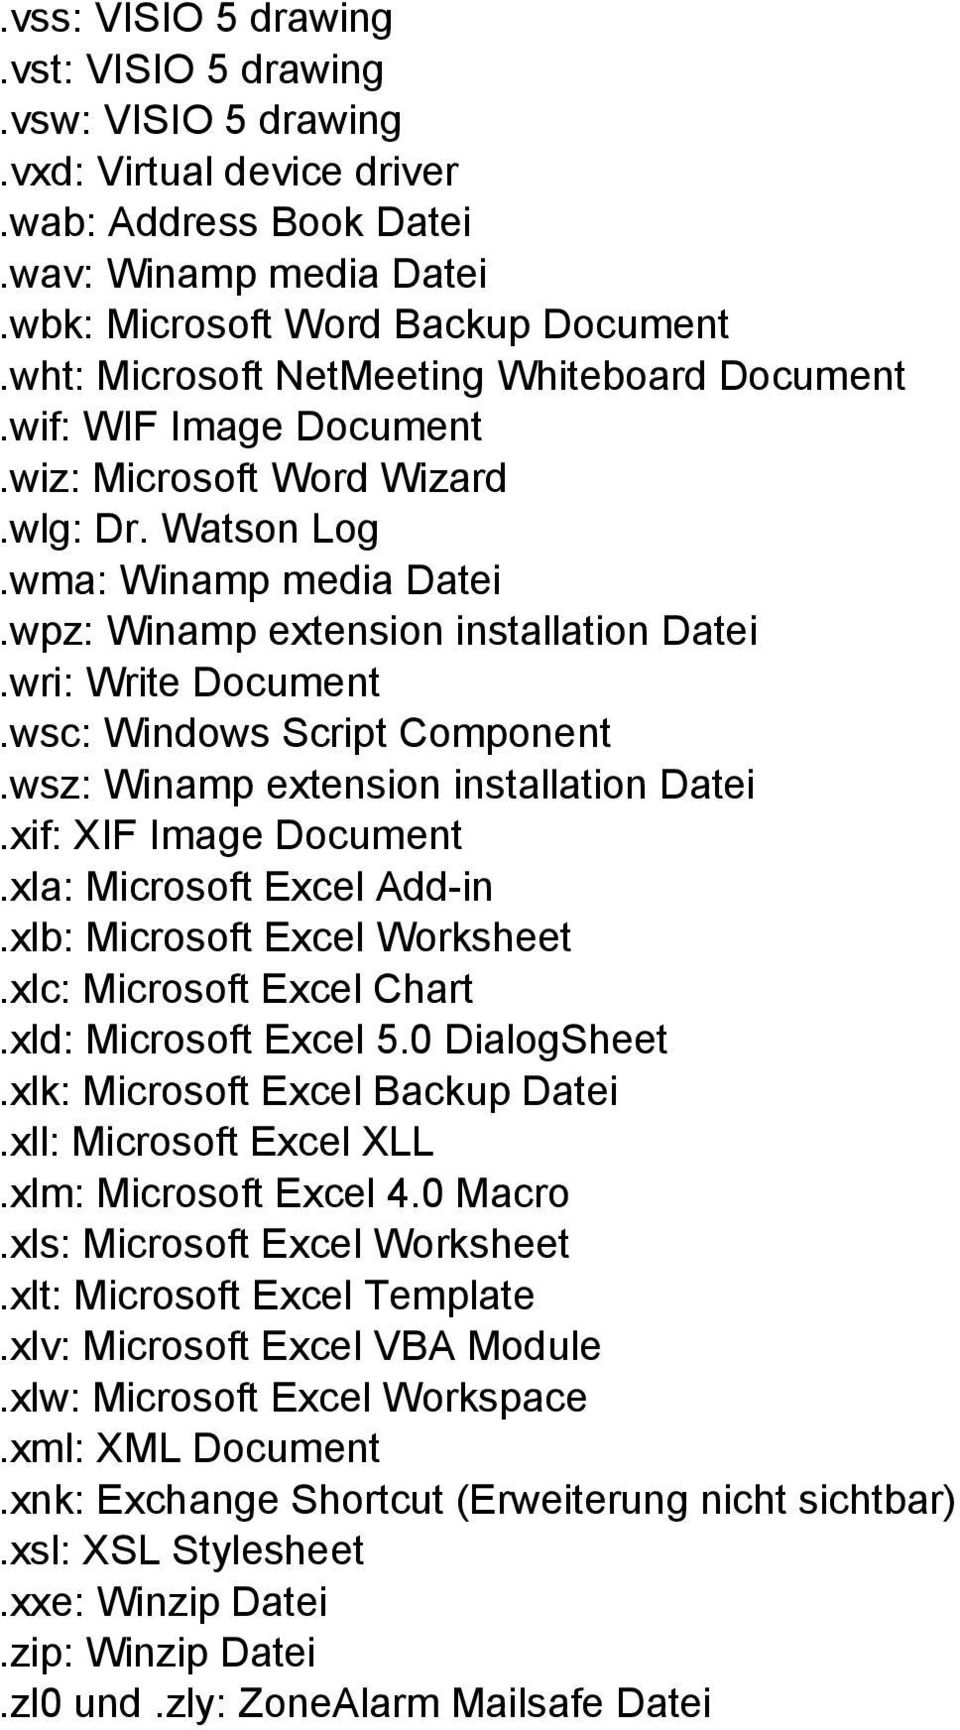 wri: Write Document.wsc: Windows Script Component.wsz: Winamp extension installation Datei.xif: XIF Image Document.xla: Microsoft Excel Add-in.xlb: Microsoft Excel Worksheet.